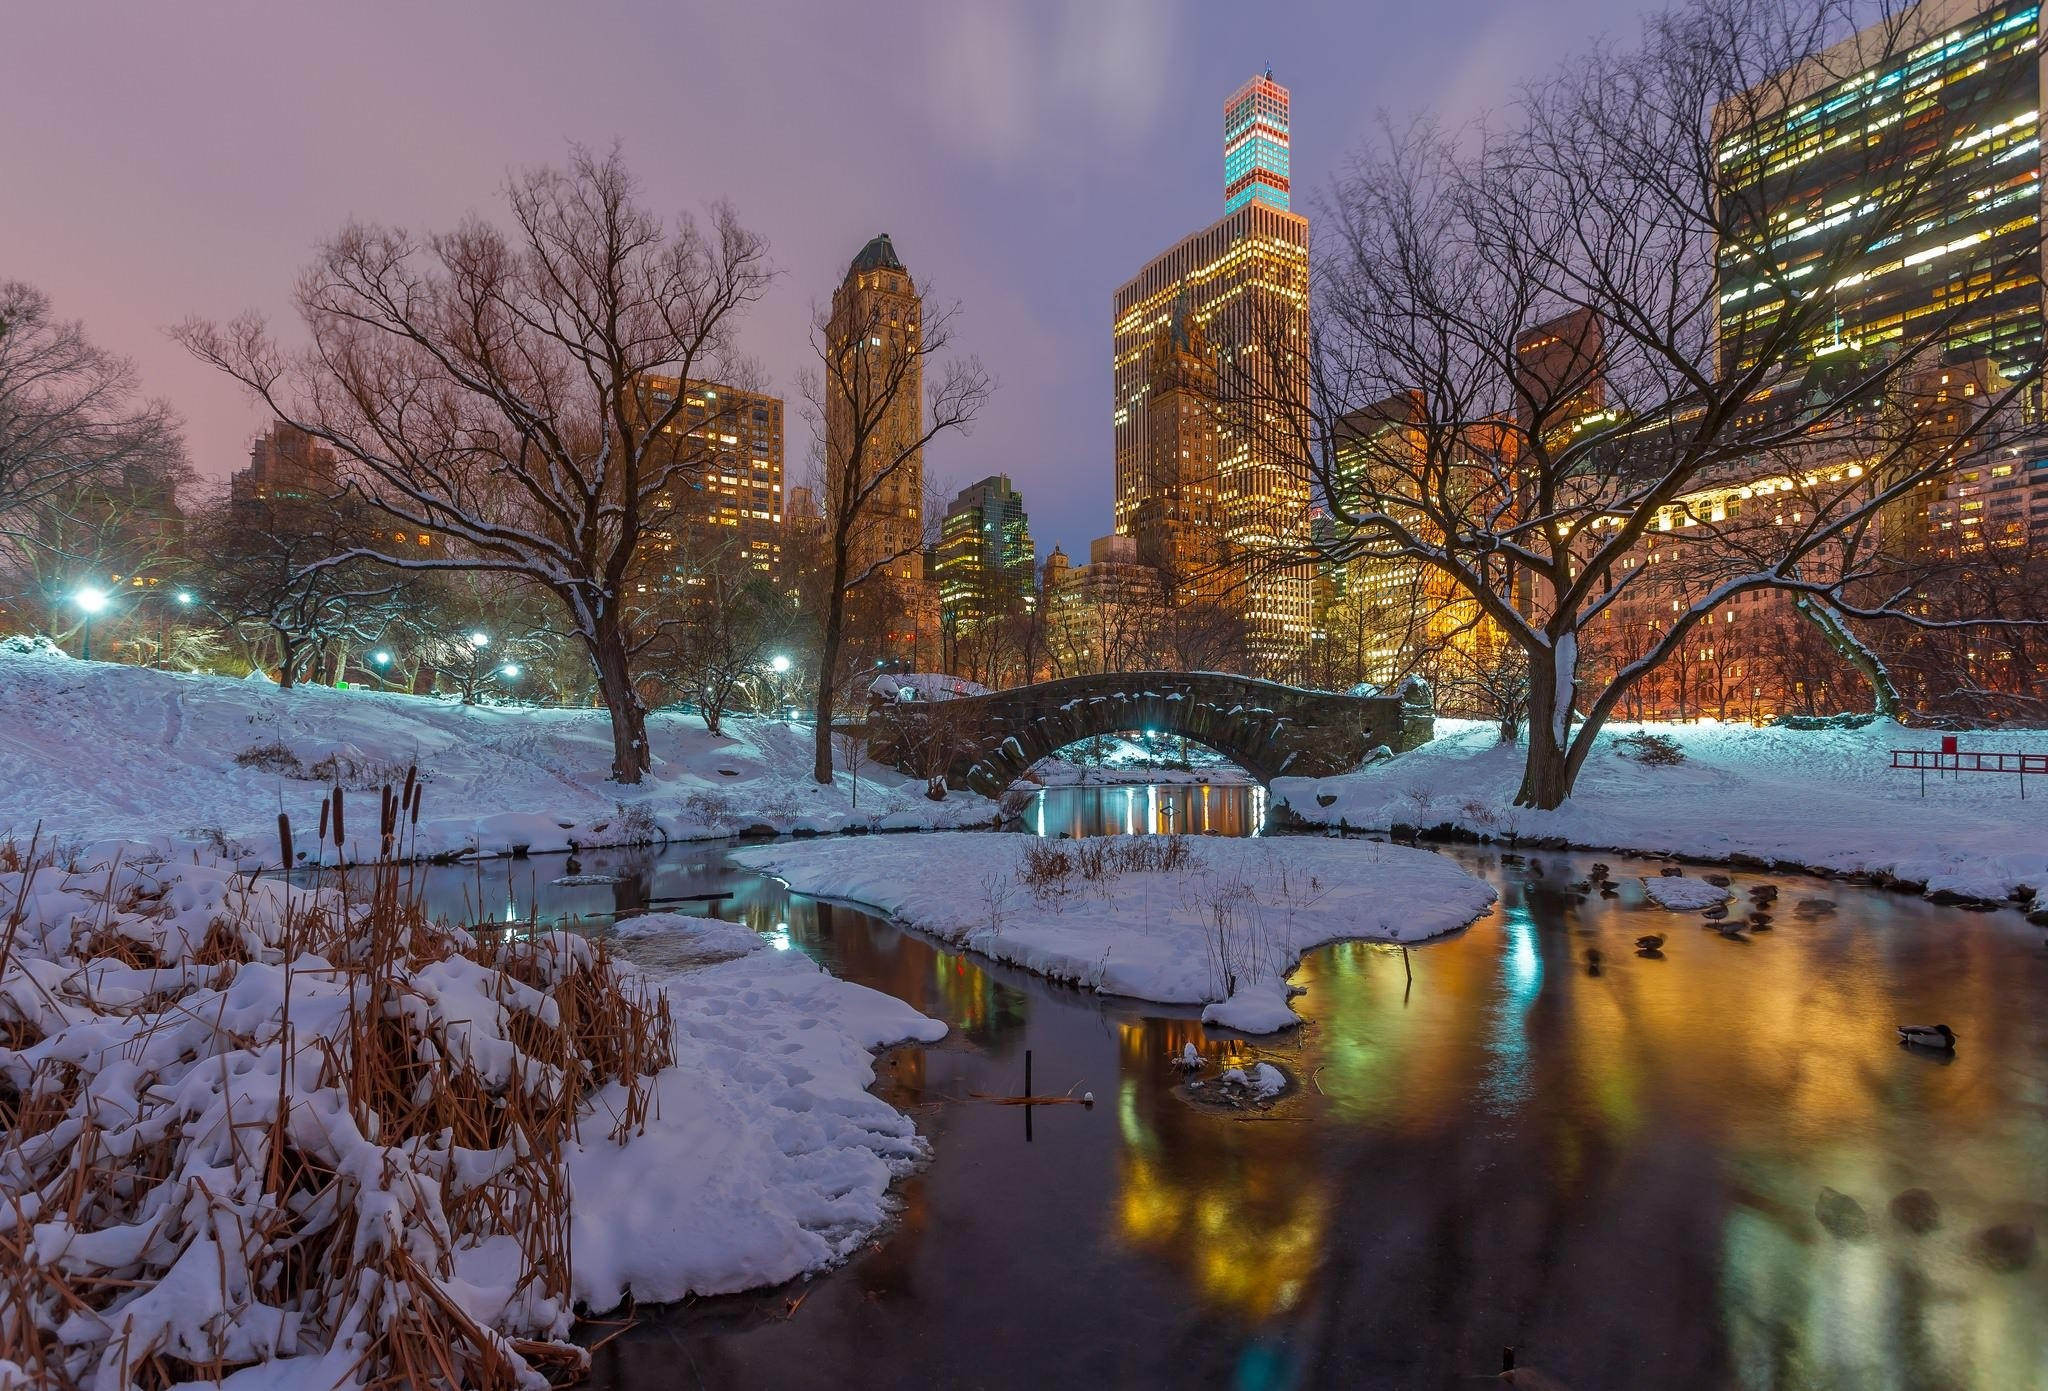 2048x1391 Central park, skyscrapers, reflection, snow, Gapstow Bridge, winter, trees,